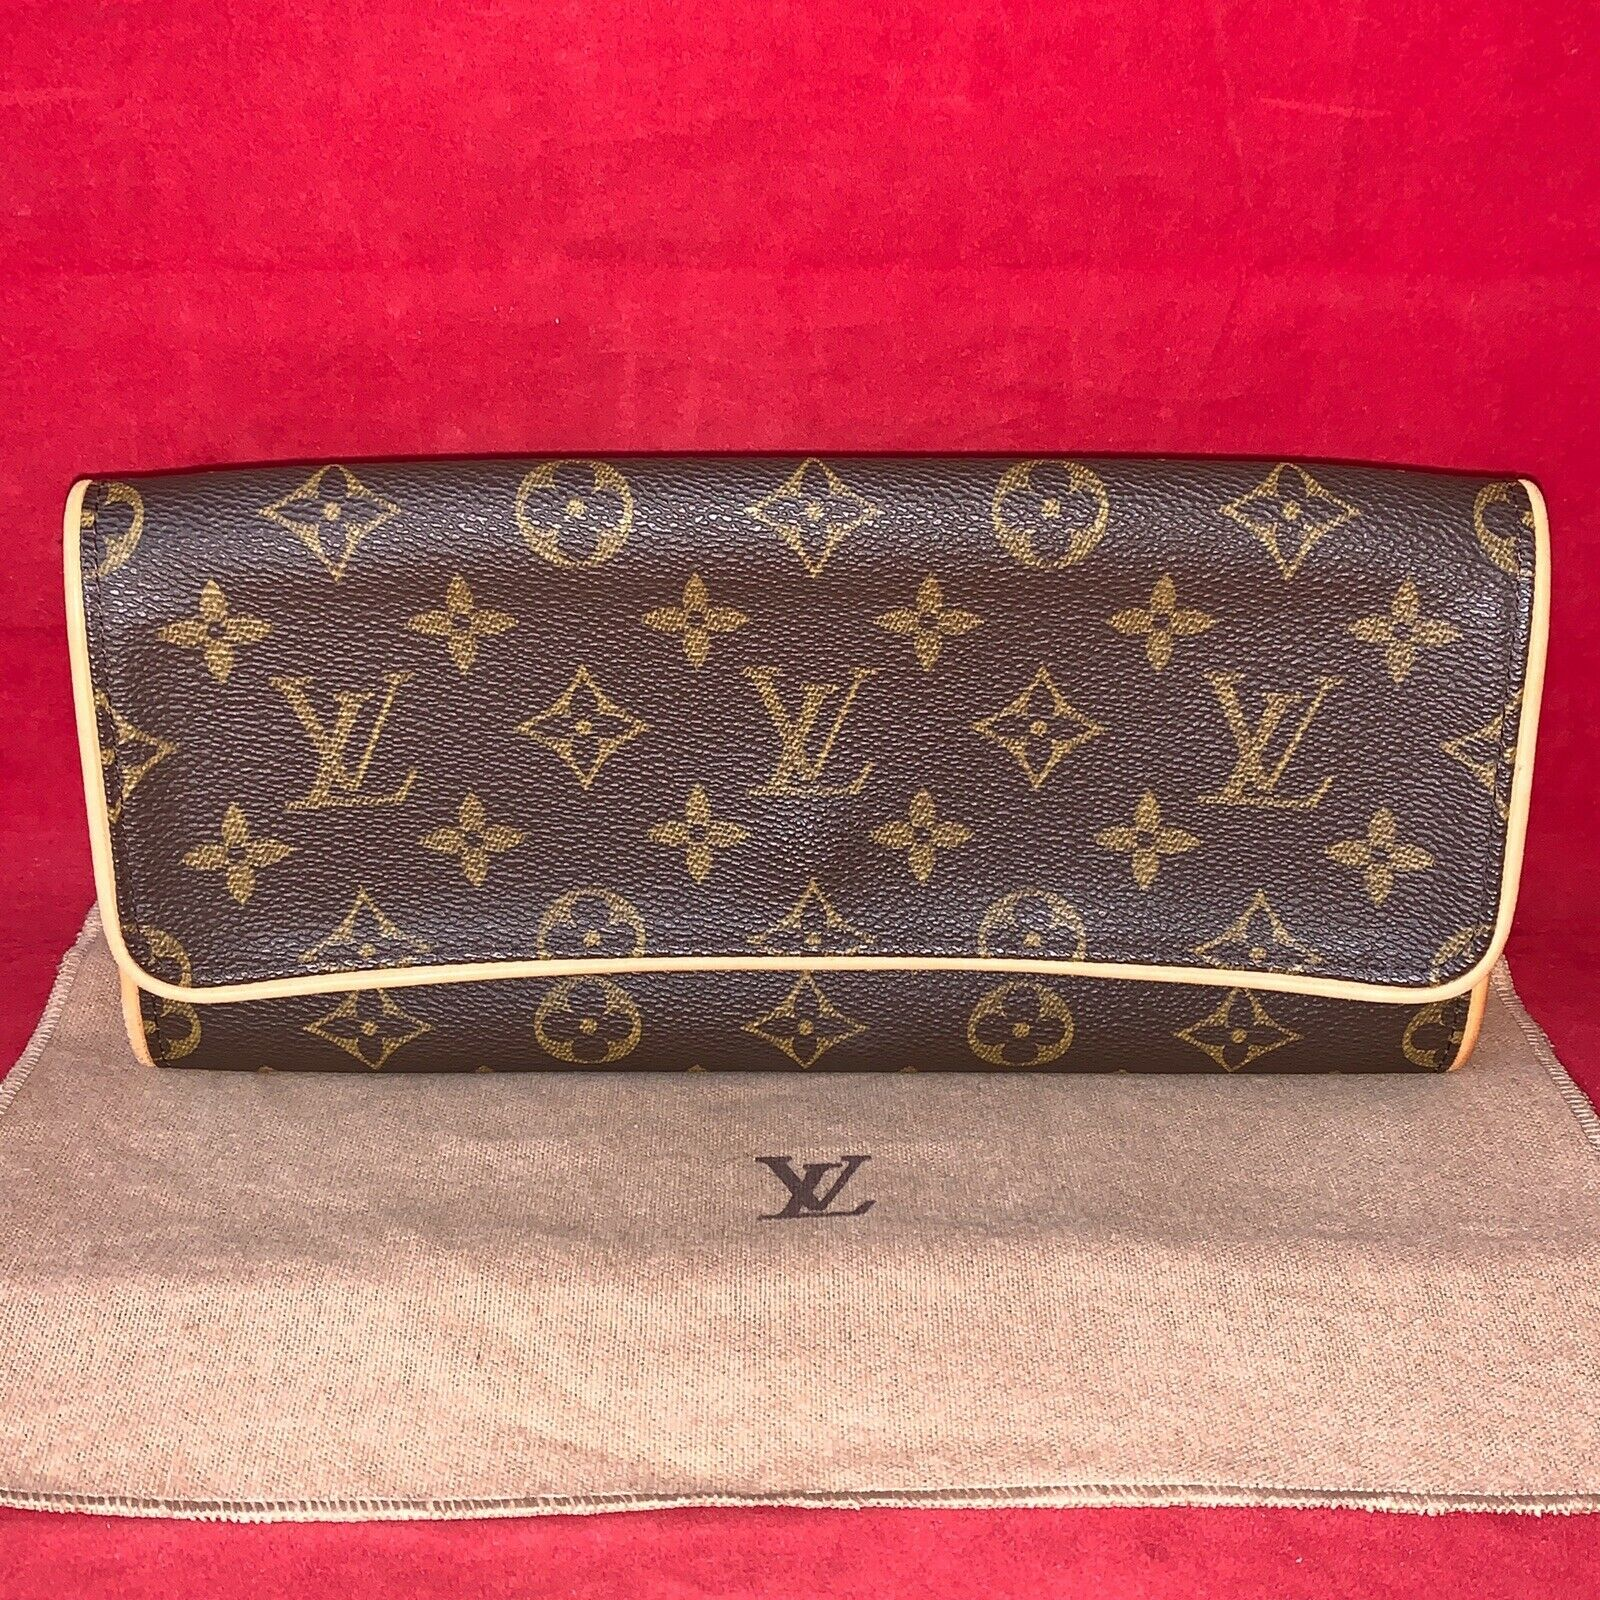 Louis Vuitton Twin GM Clutch / Pochette kleines Abendtäschchen Monogram Canvas - 399.00,Kaufpreis 399,datum 01.09.2020 02:45:34,Website